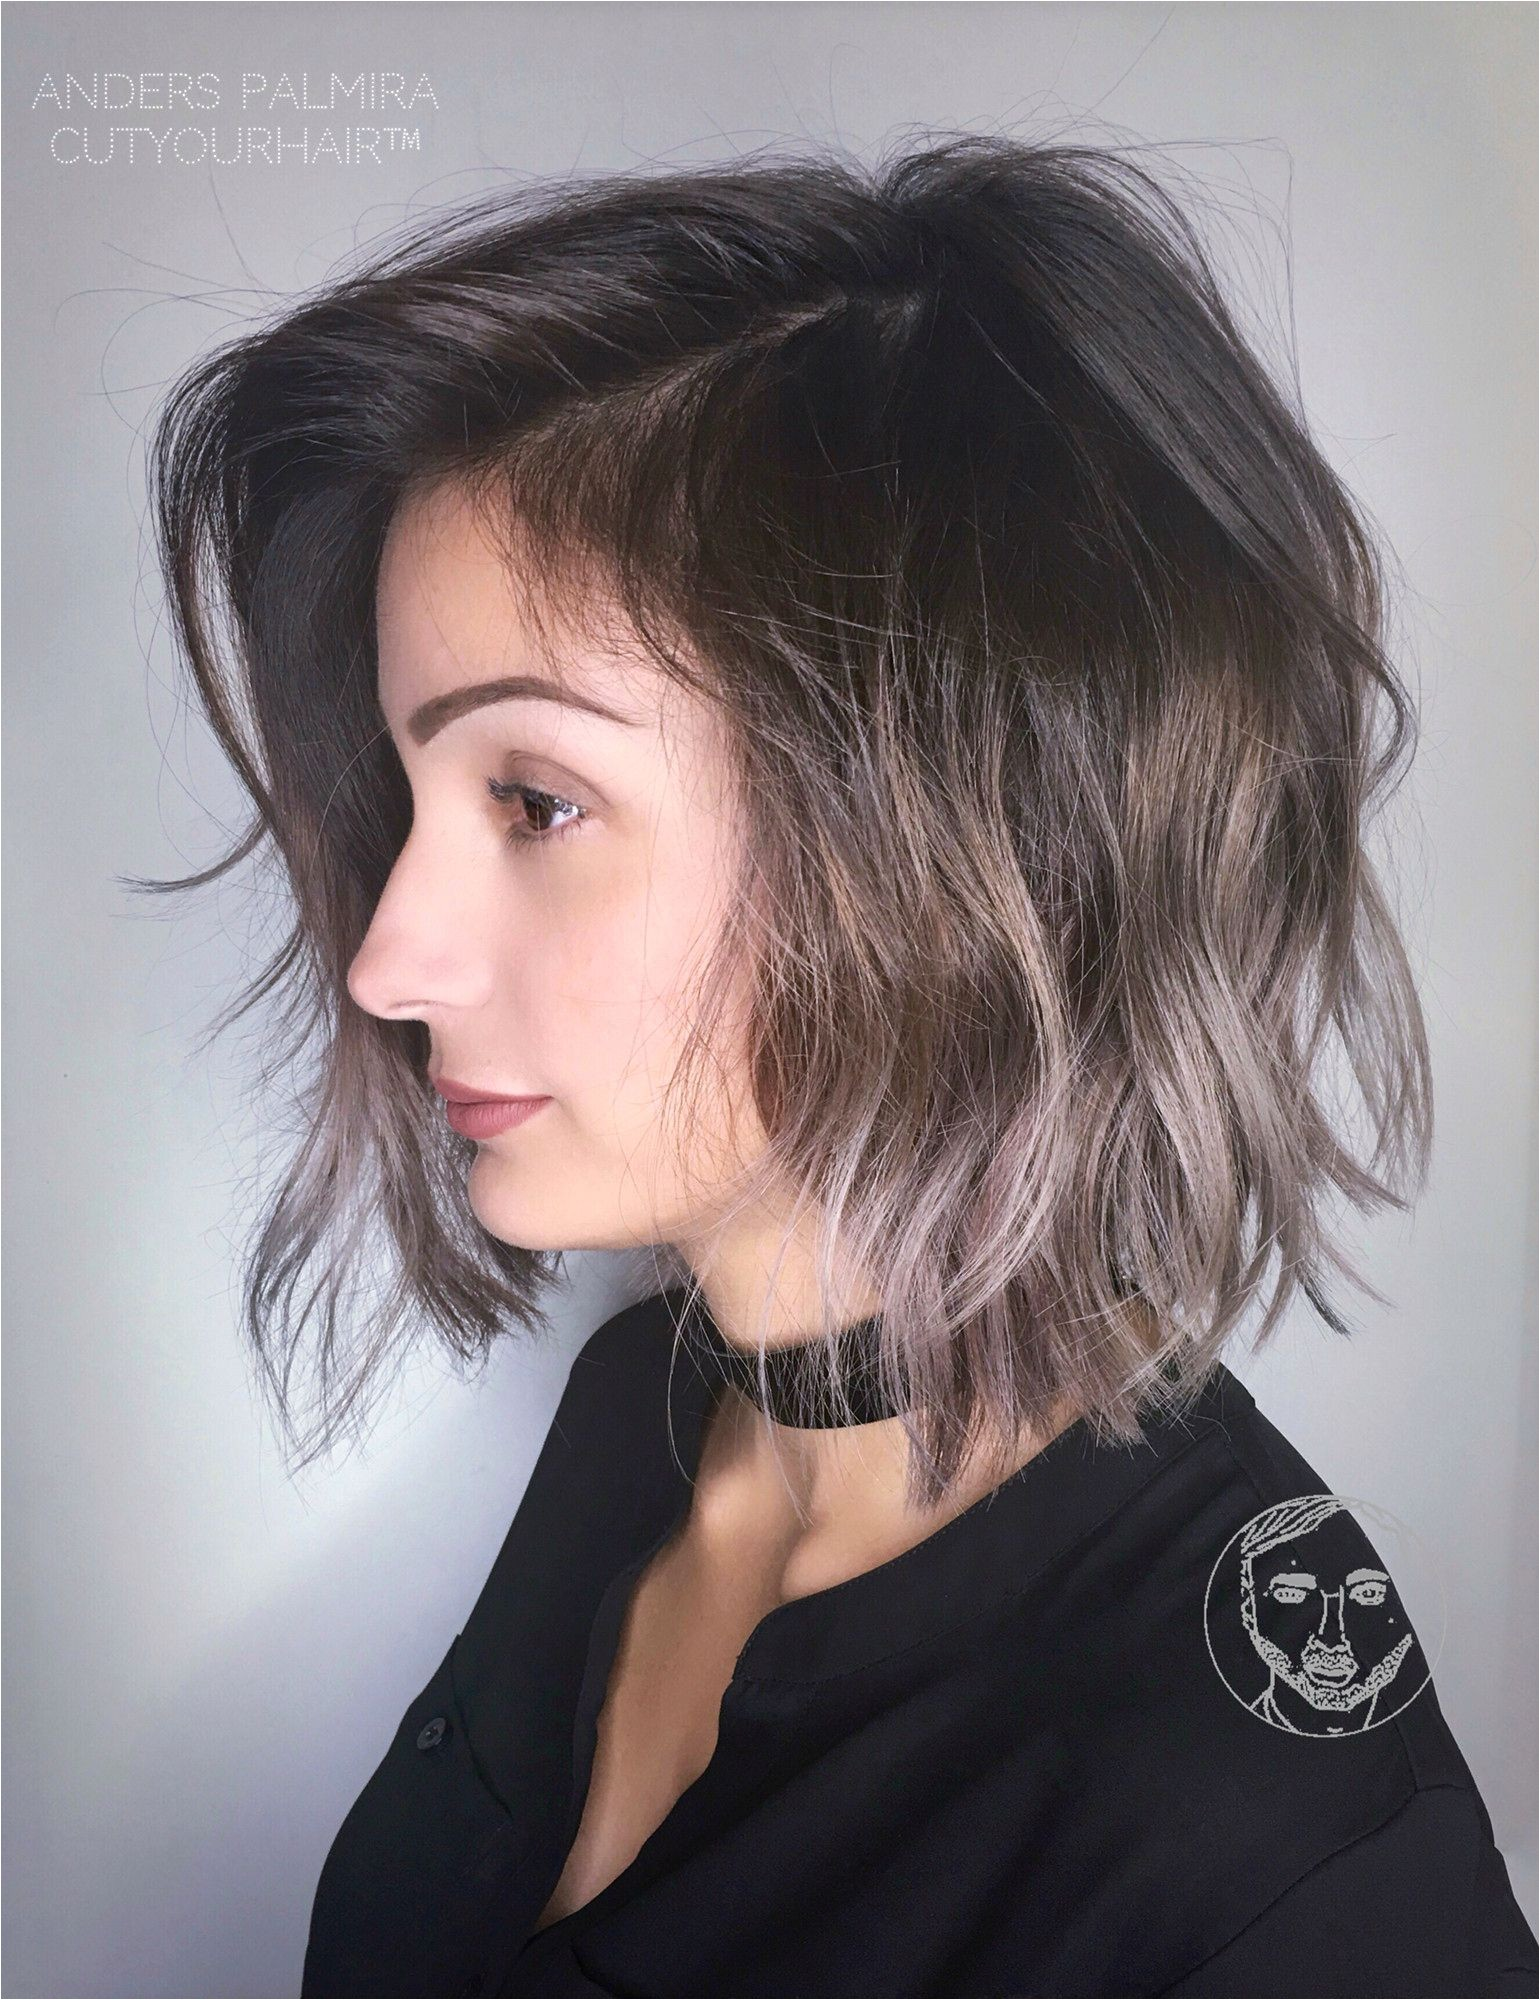 Short Hairstyles for Women In their 40s Lovely 20s Hairstyles for Short Hair Unique Medium Cut